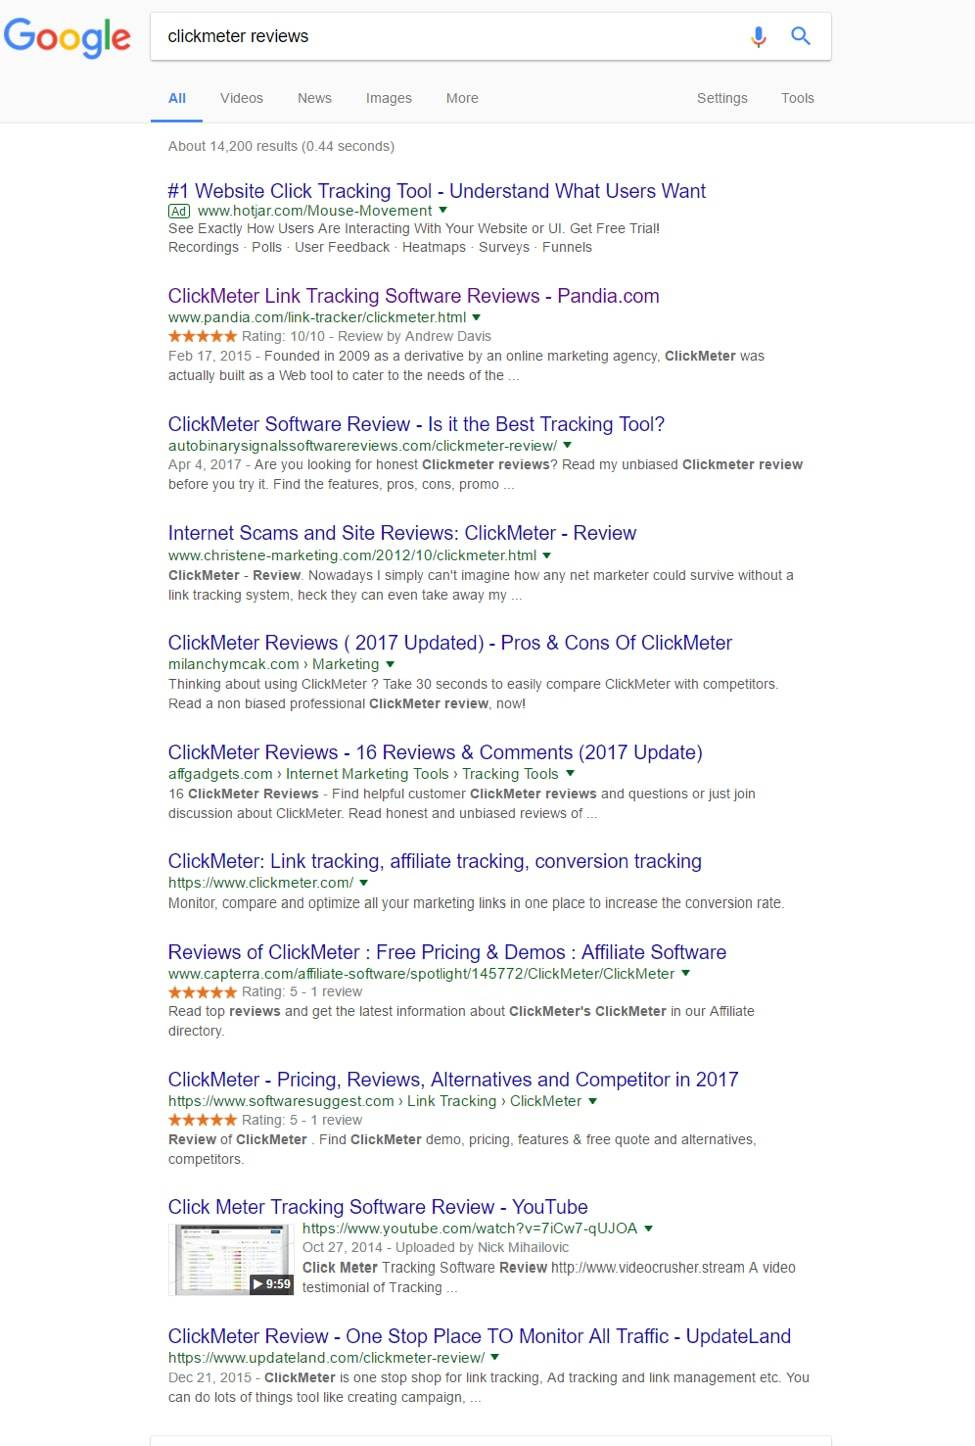 Clickmeter Reviews SERPs